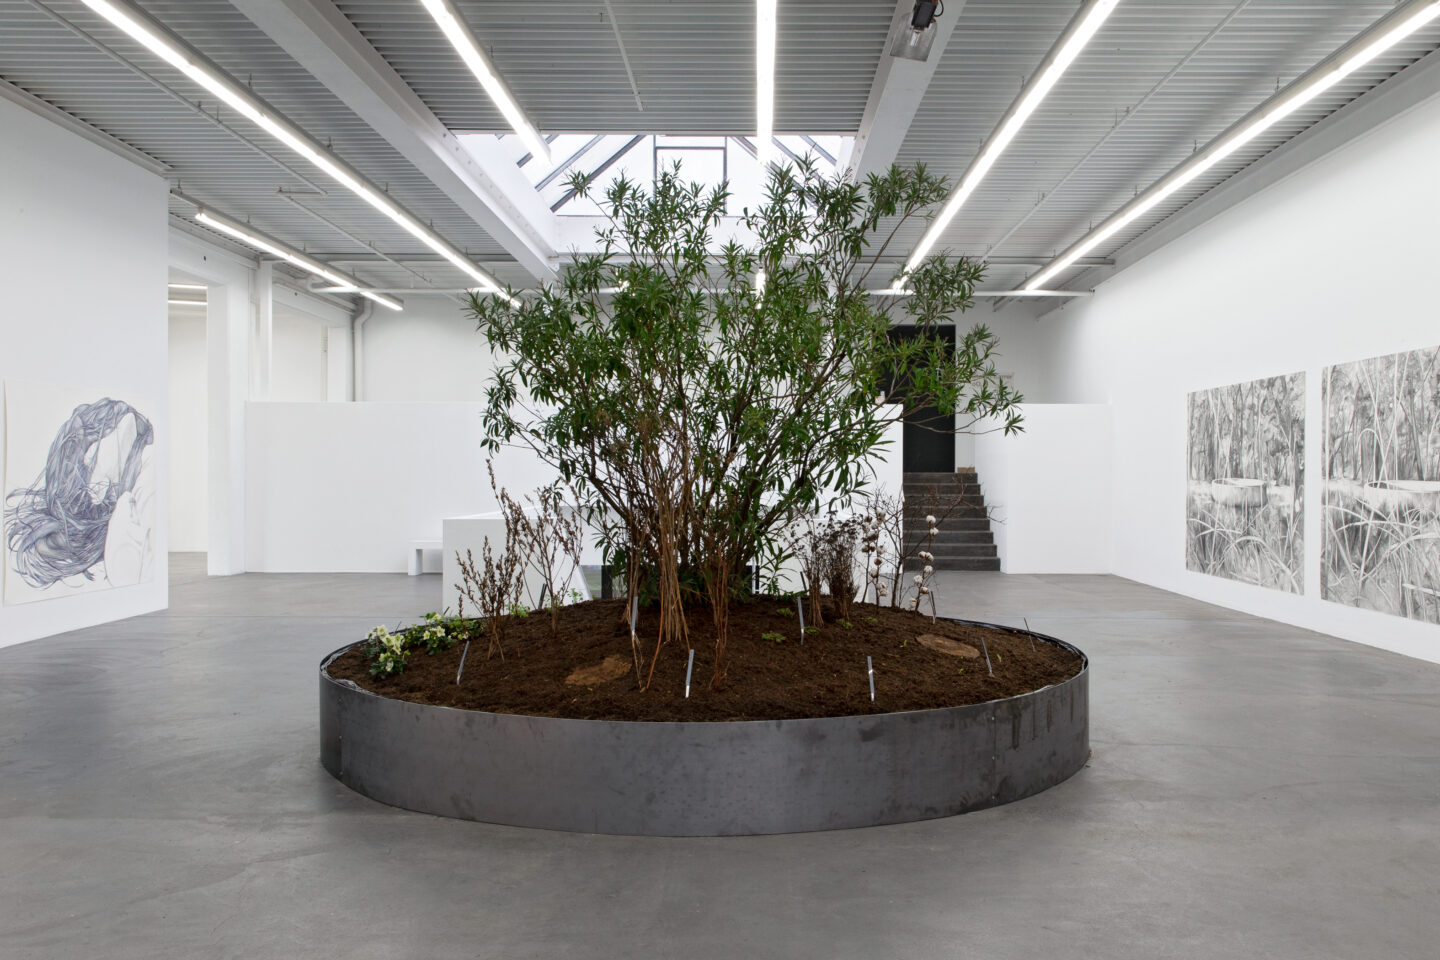 Exhibition View Marlene McCarty Soloshow «Into the Weeds; view on Into the Weeds, 2019» at Kunsthaus Baselland, Muttenz, 2020 / Photo: Gina Folly / Courtesy: the artist